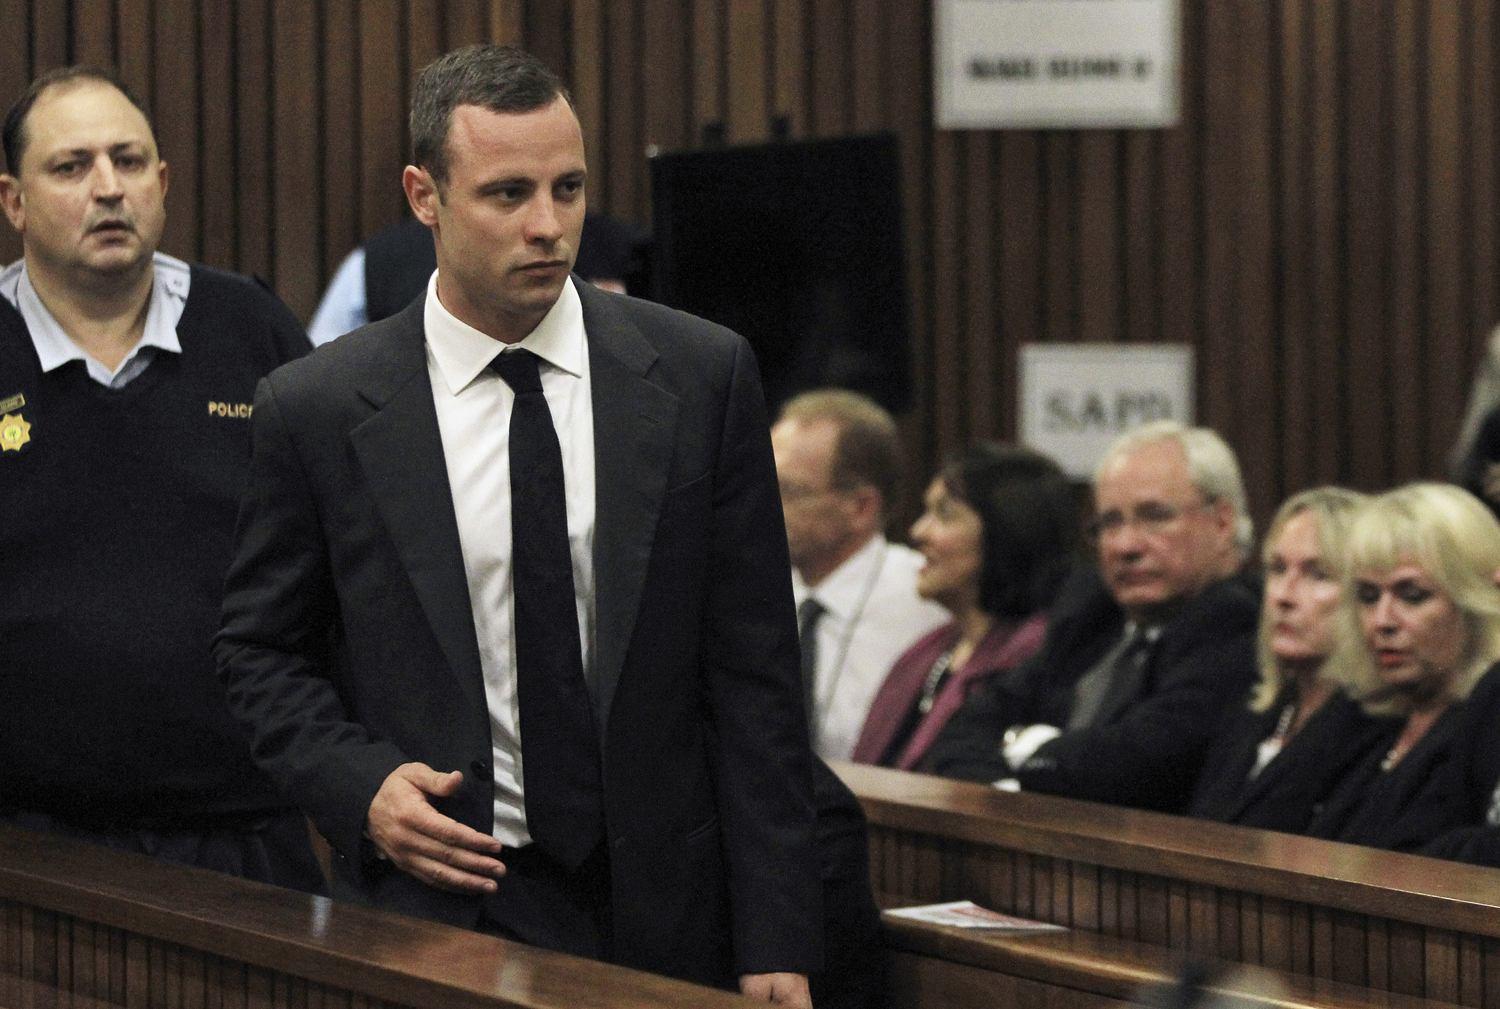 Oscar Pistorius arrives in court ahead of his trial at the North Gauteng High Court in Pretoria Mar. 3, 2014